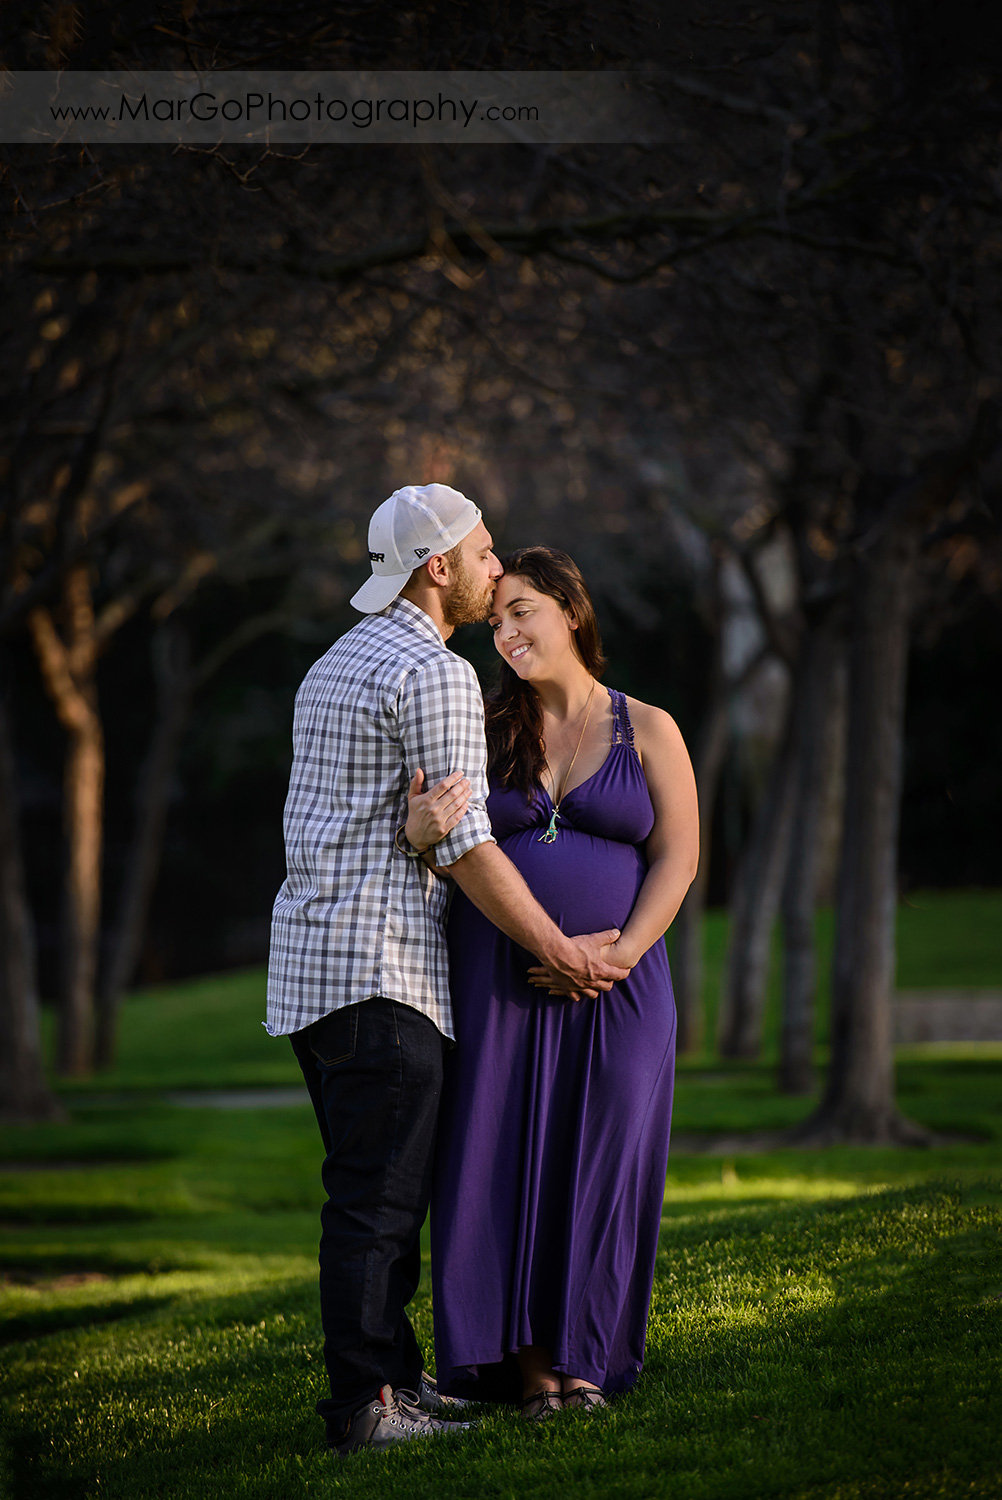 full body portrait of man in checkered shirt and pregnant woman in long violet dress during maternity session at Lick Mill Park in Santa Clara